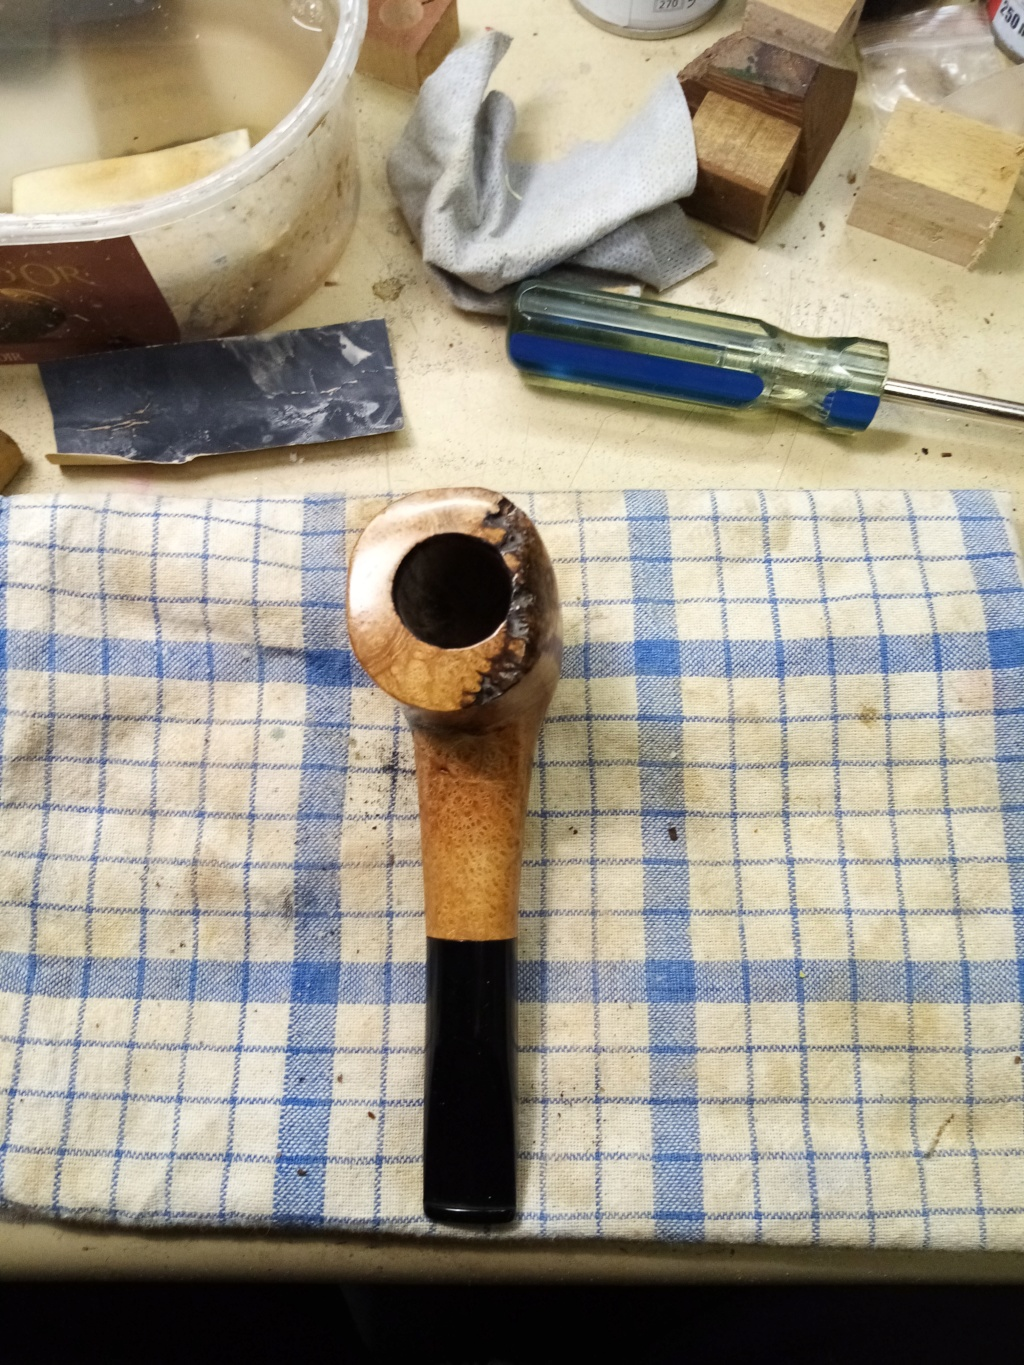 Une pipe.... - Page 2 Img_2089